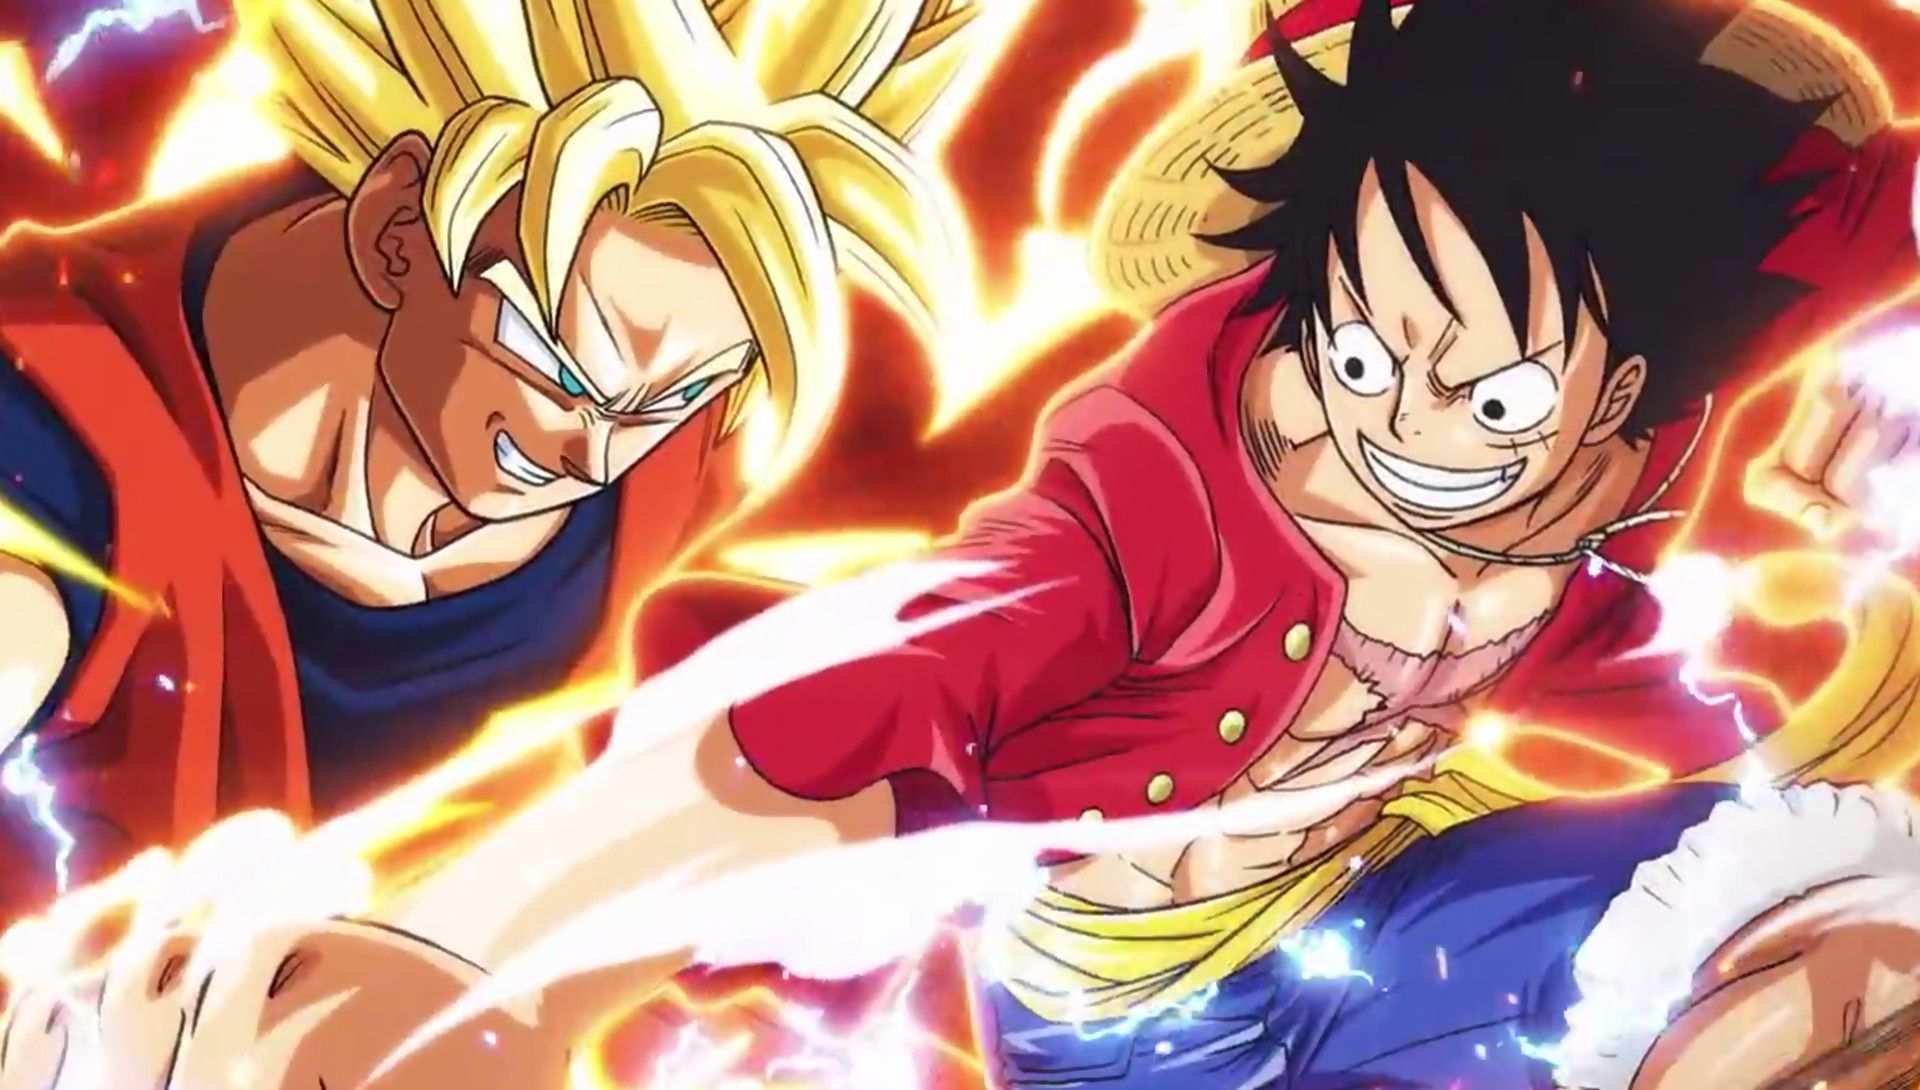 watch luffy and goku black fight in awesome flipbook animation